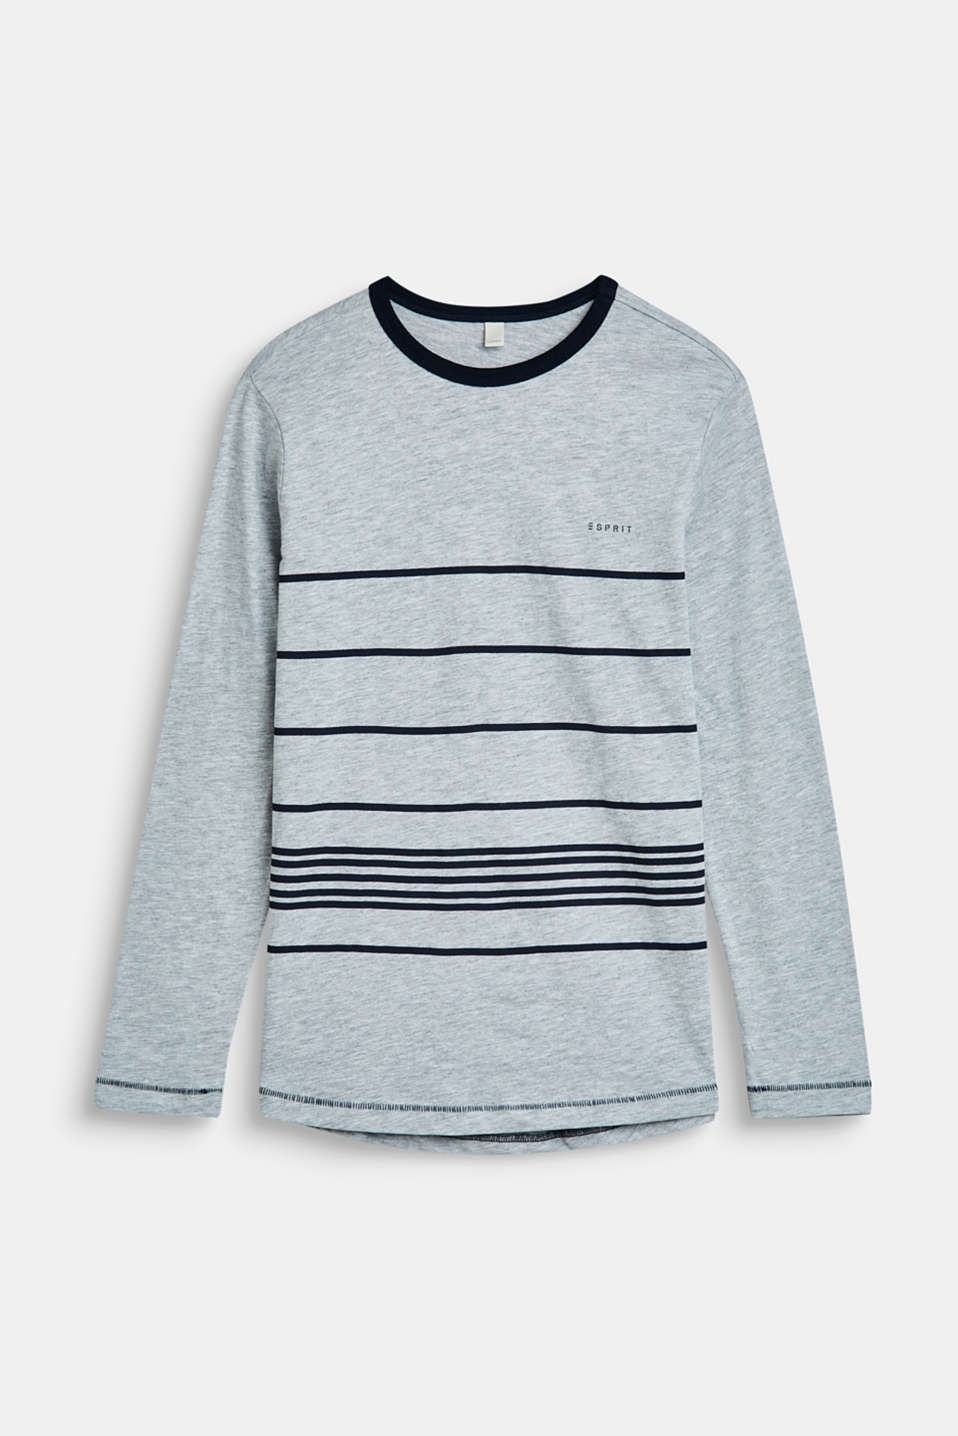 Esprit - Long sleeve top with stripes